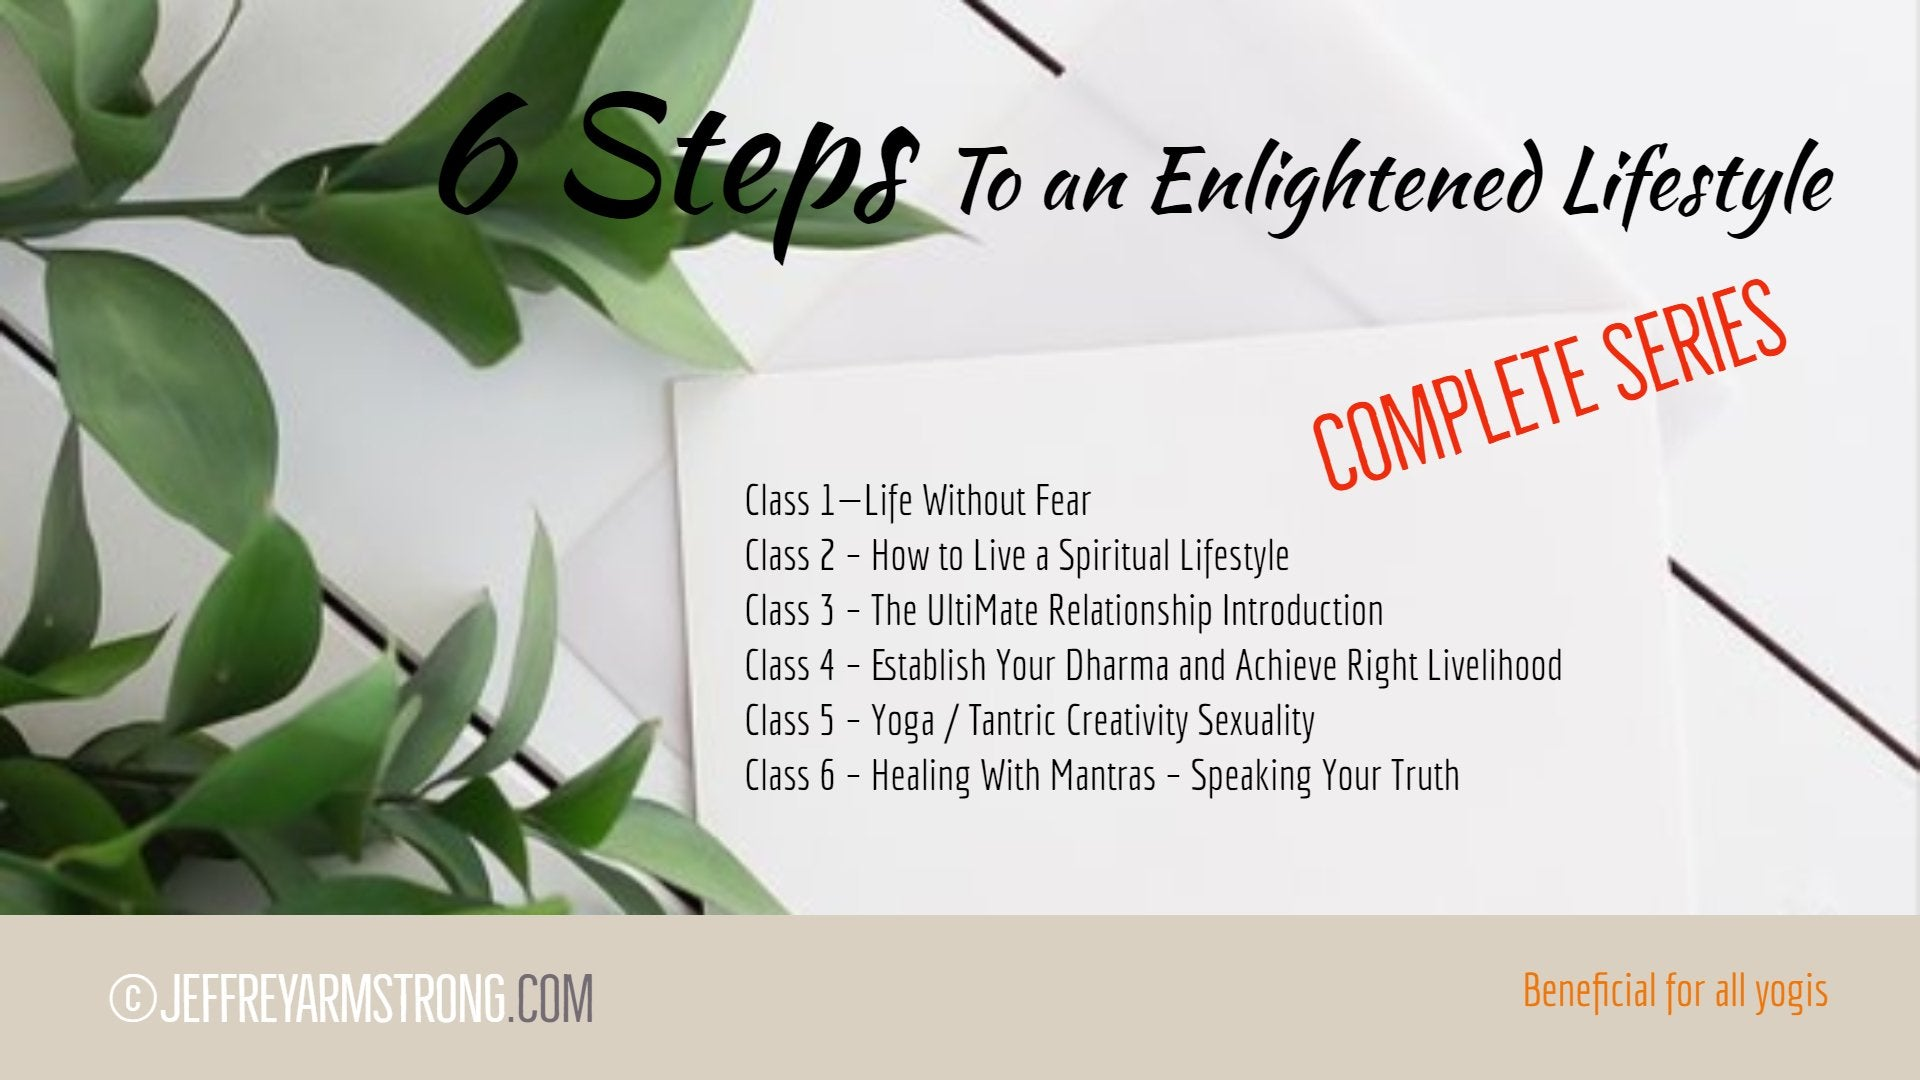 6 Steps to Enlightened Lifestyle (6 Lessons)